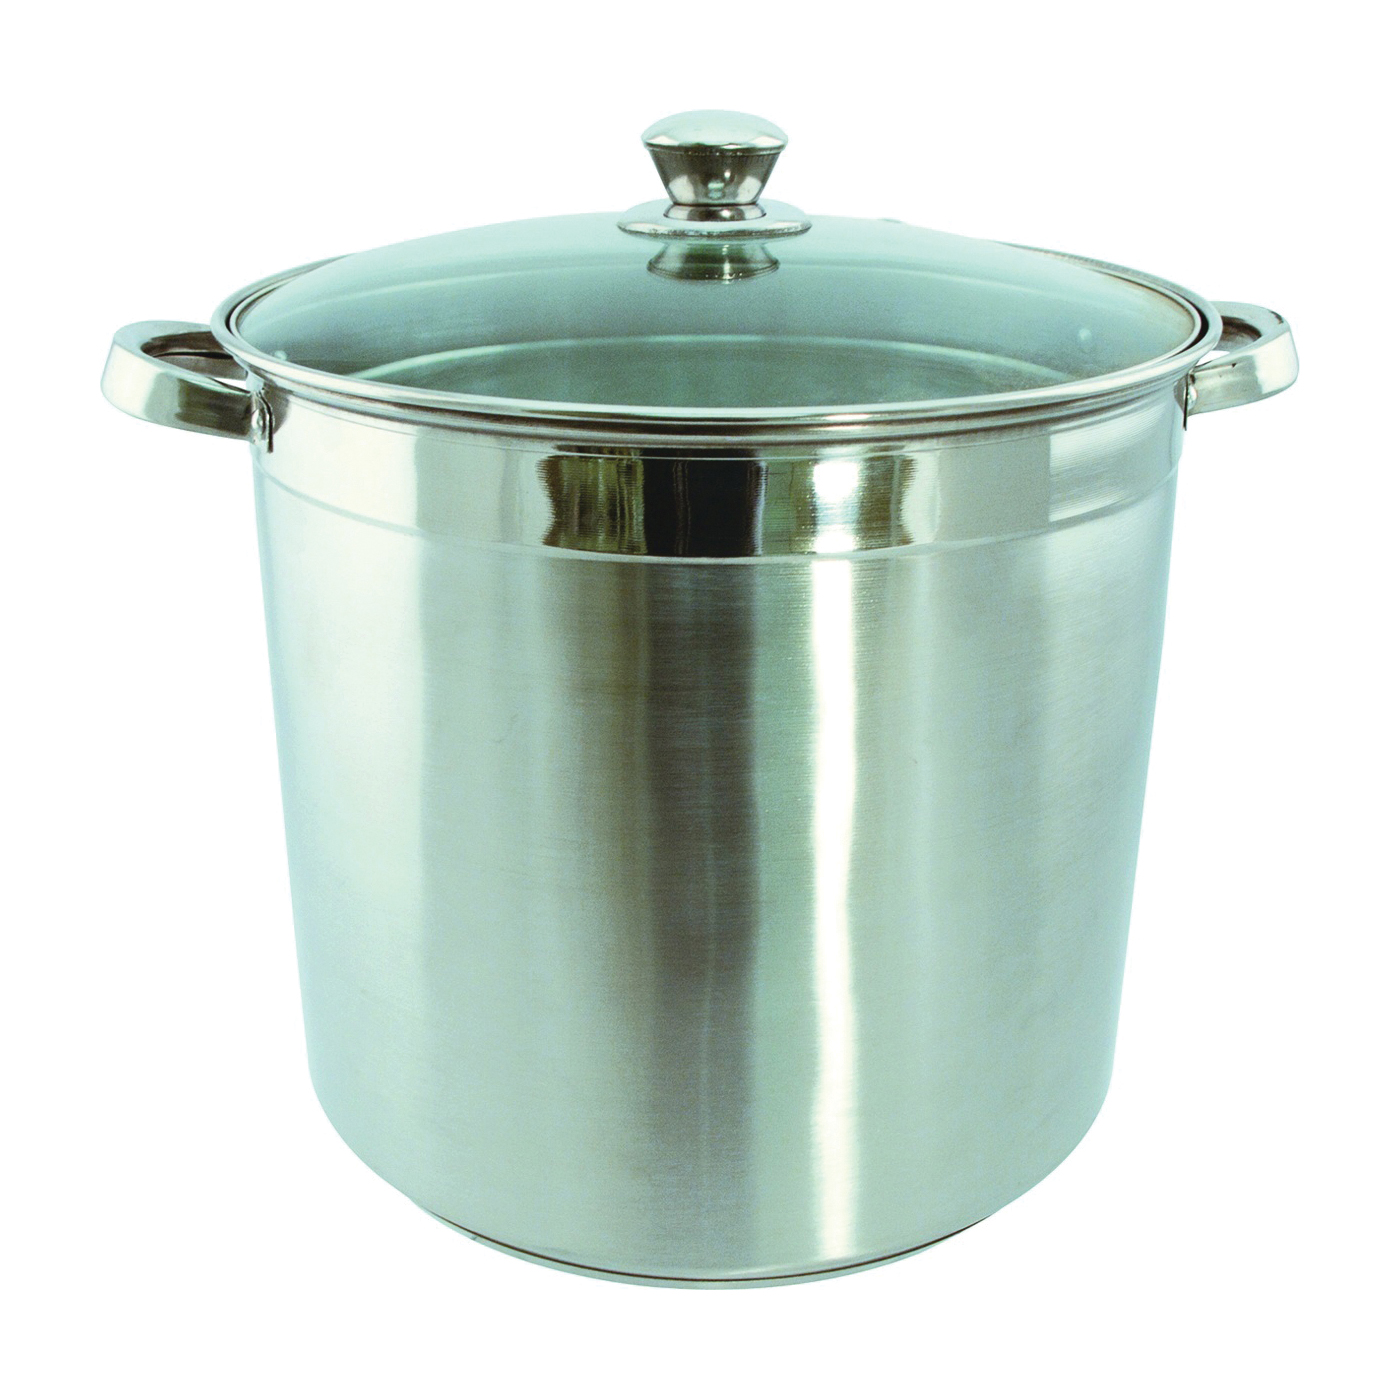 Picture of Euro-Ware 3016 Stock Pot with Lid, 16 qt Capacity, Stainless Steel